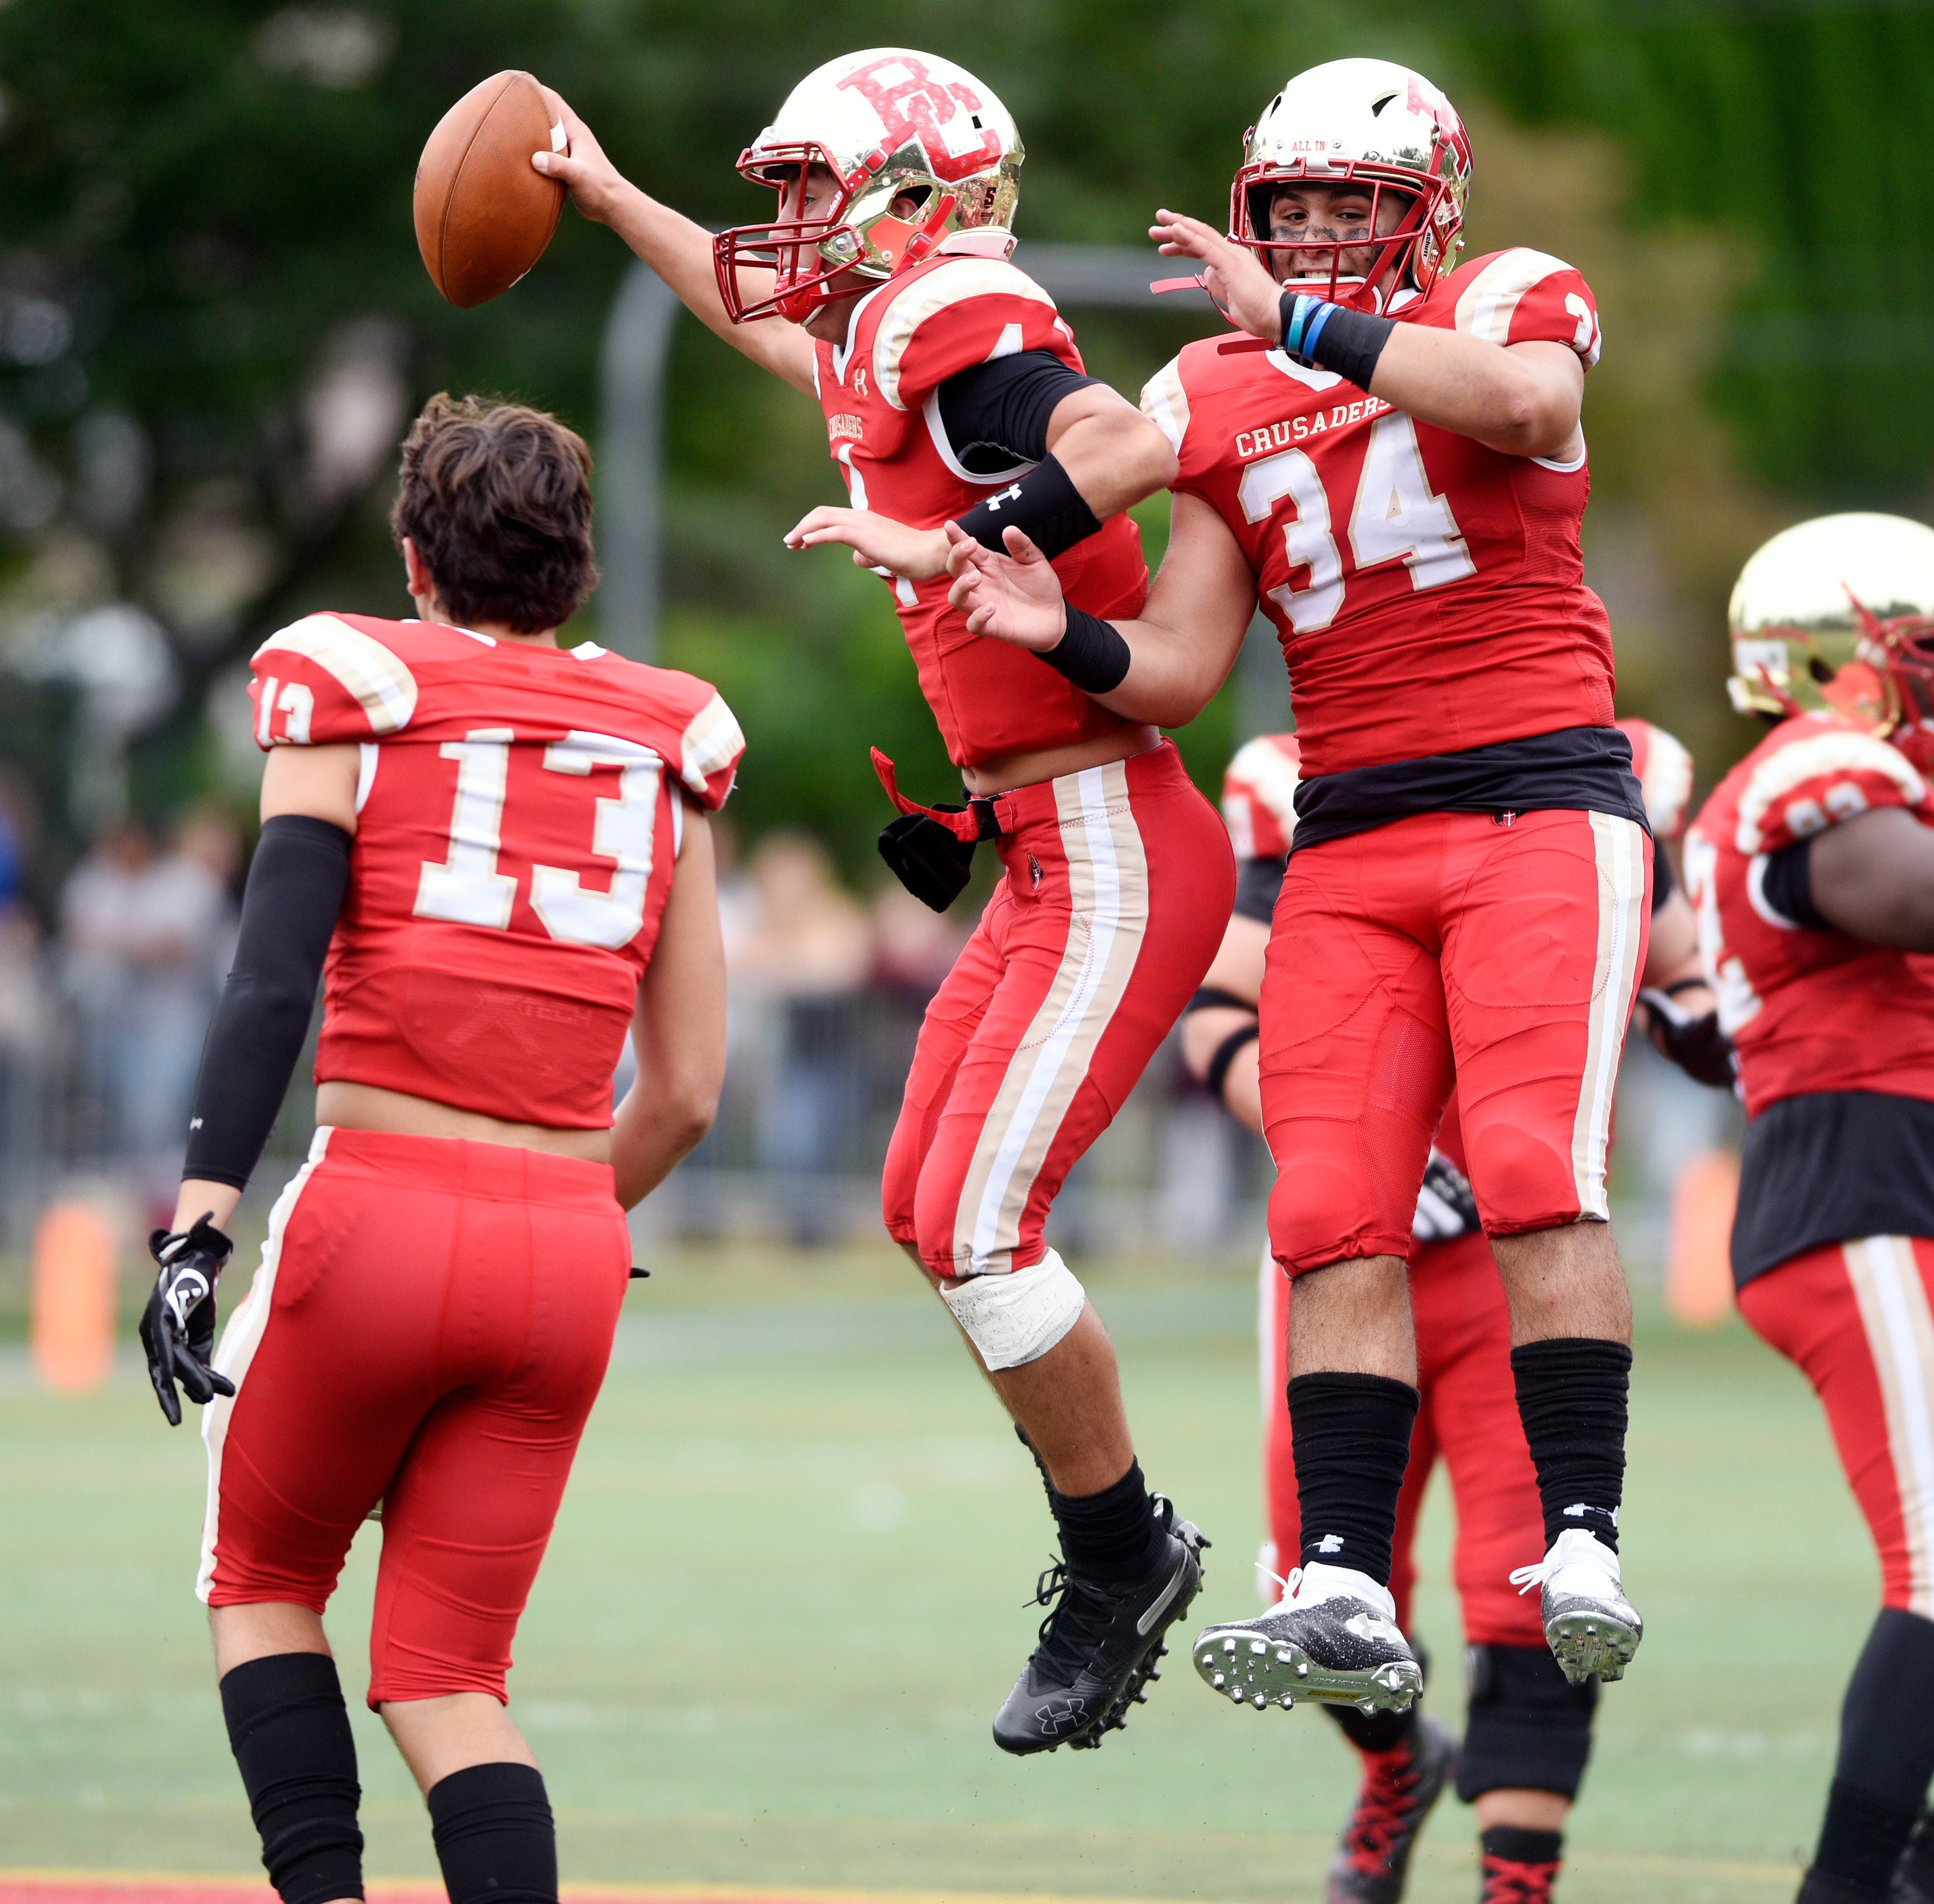 Bergen Catholic football holds off Don Bosco, 14-13, on late interception